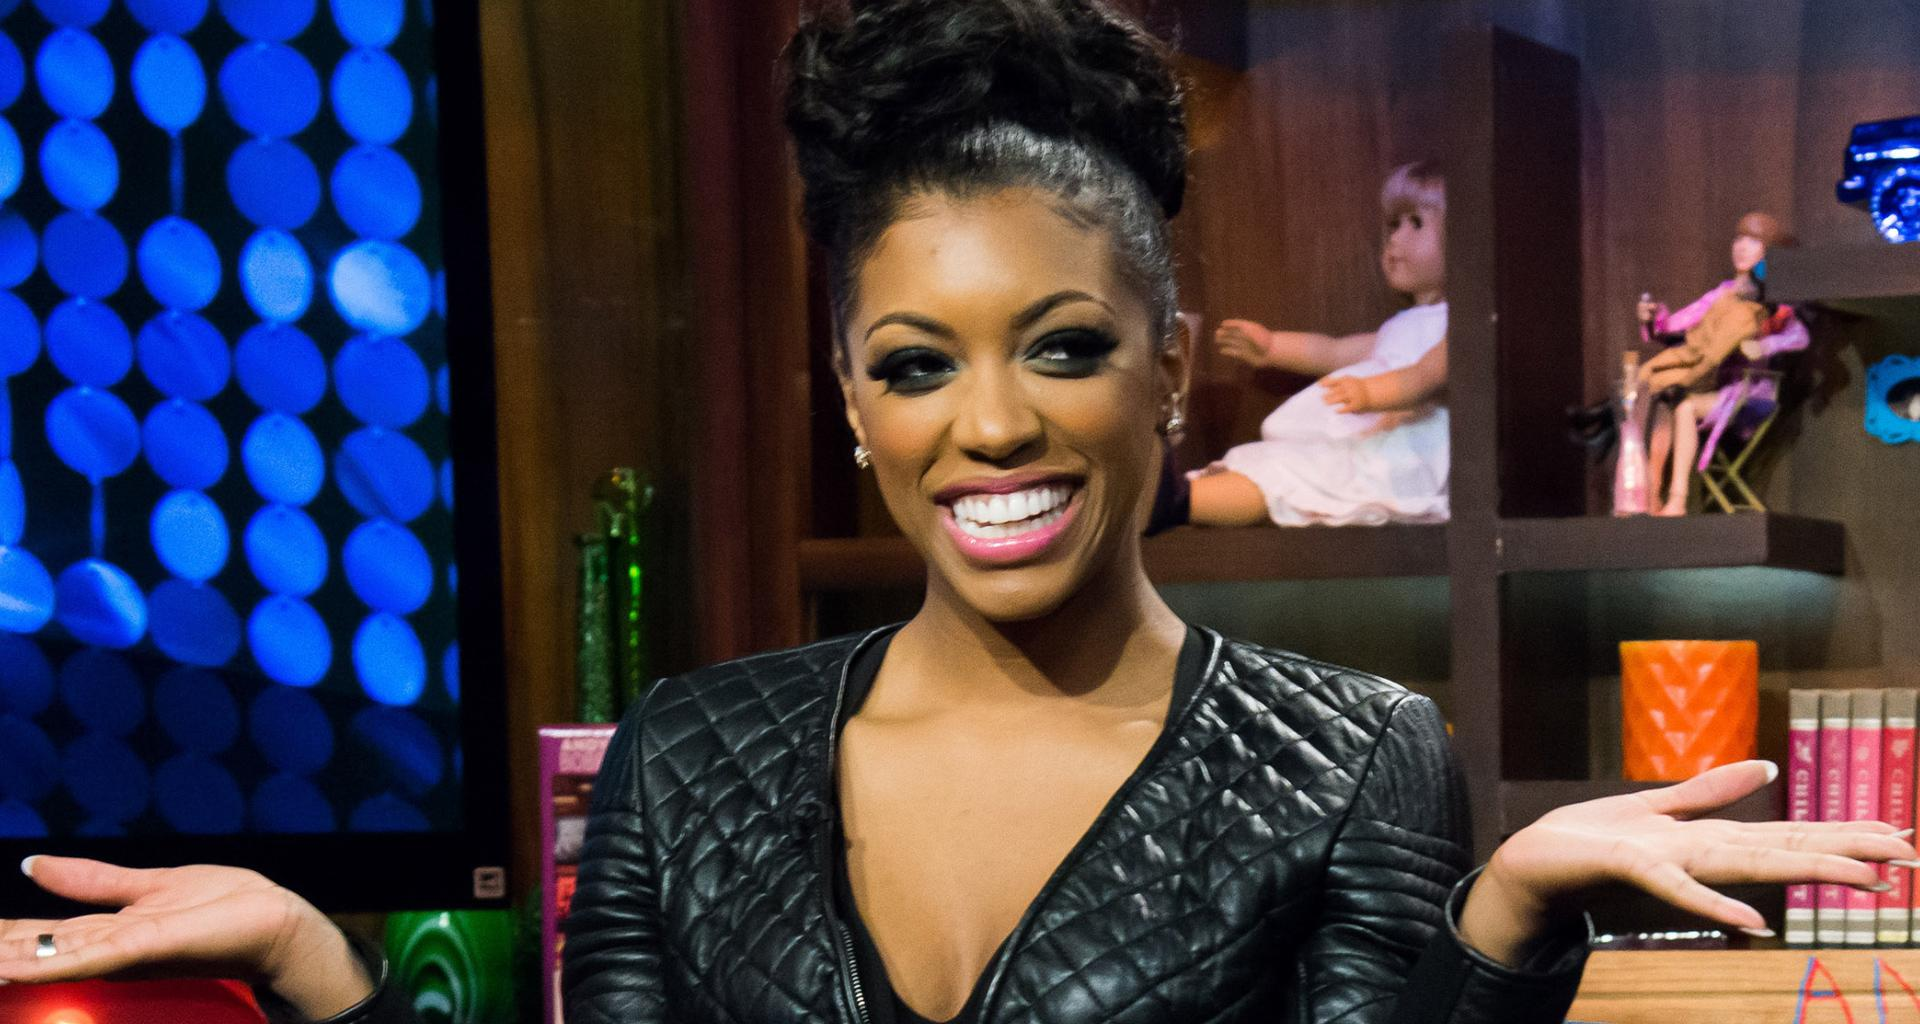 Porsha Williams Shares Pics & Videos From Her Date Night With Dennis McKinley And Fans Thank Her For Being Transparent About How A Postpartum Body Looks Like